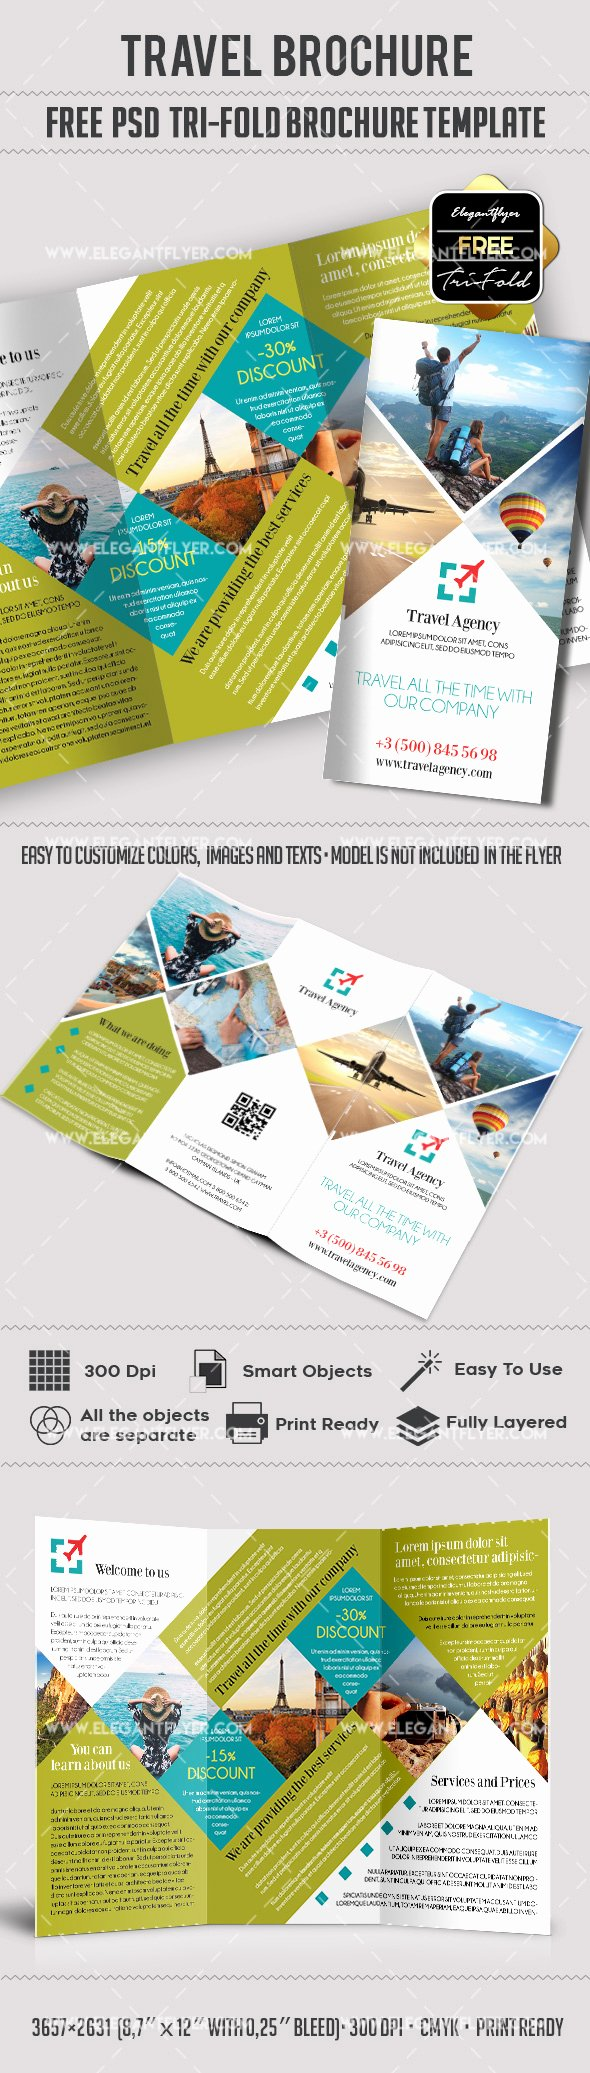 Free Travel Brochure Template Elegant Travel – Free Psd Tri Fold Psd Brochure Template – by